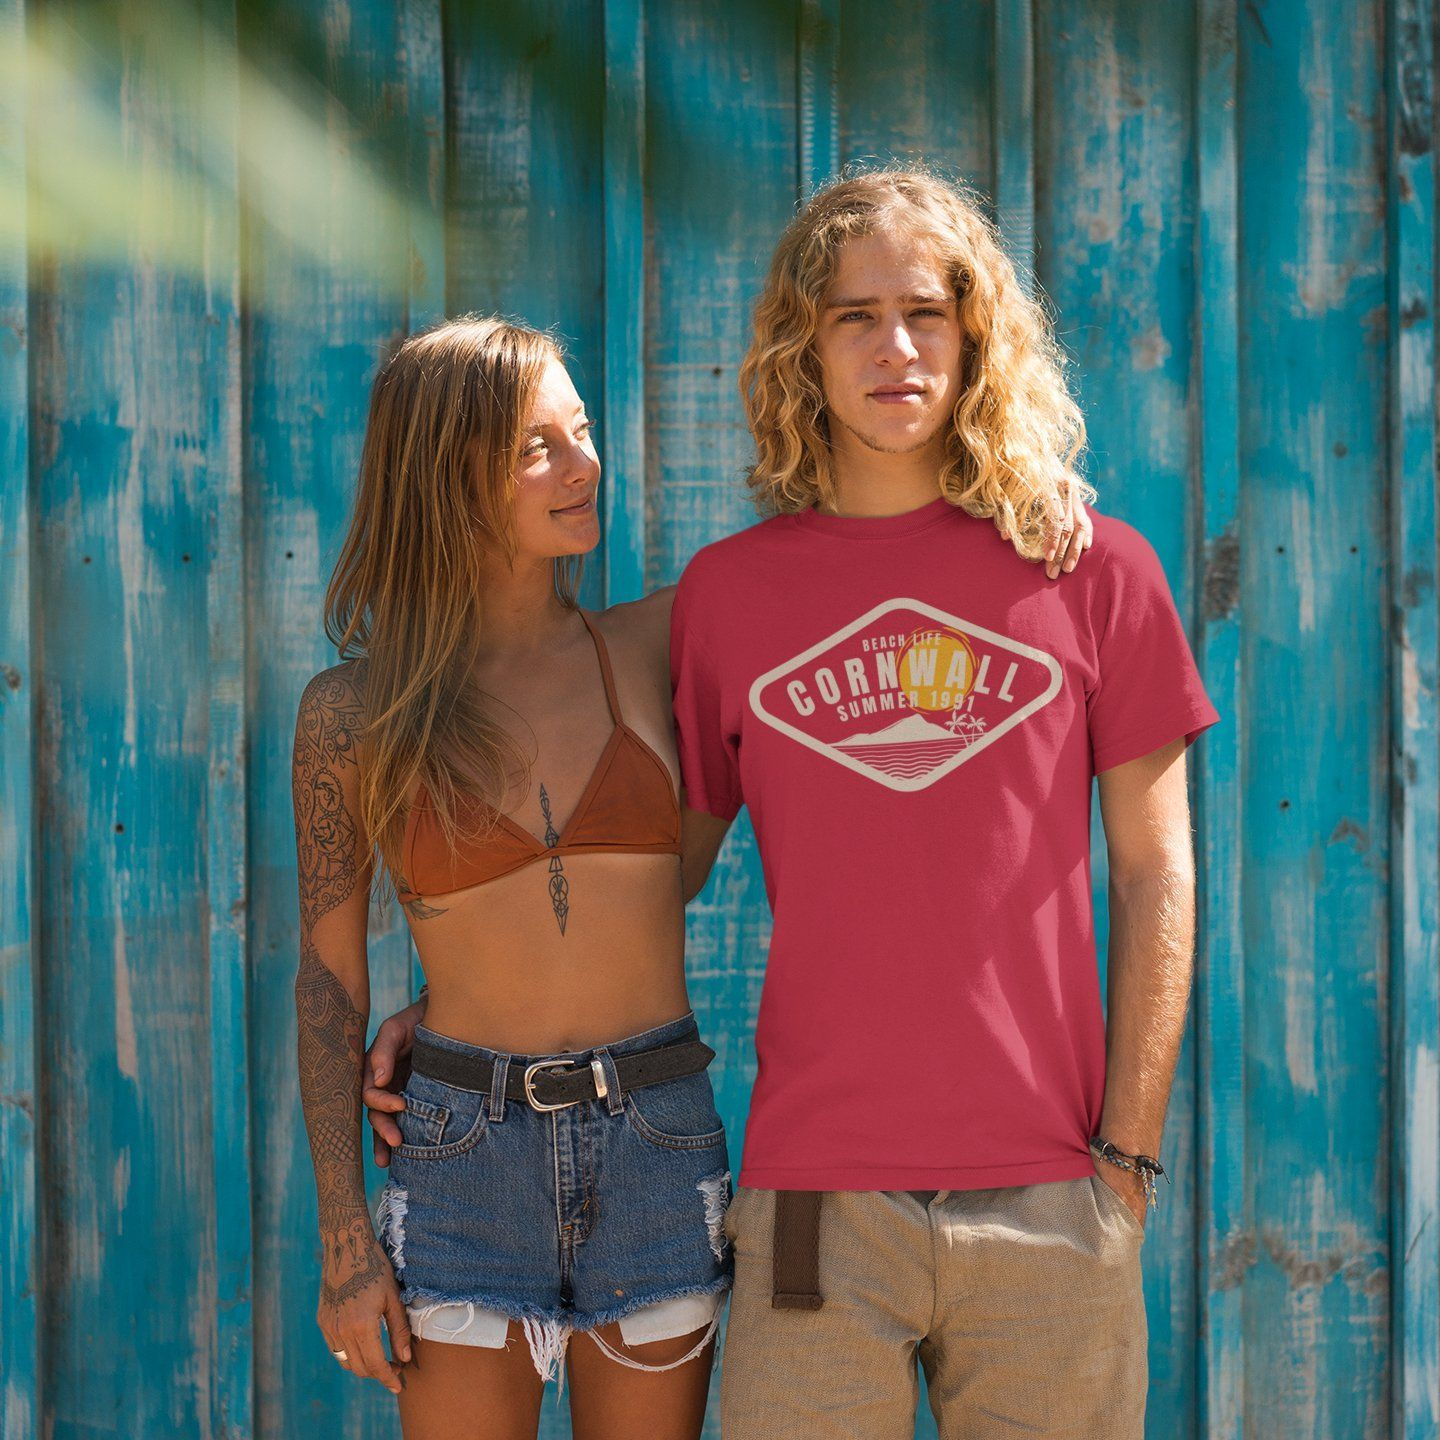 Beach Life Cornwall Short sleeve t-shirt